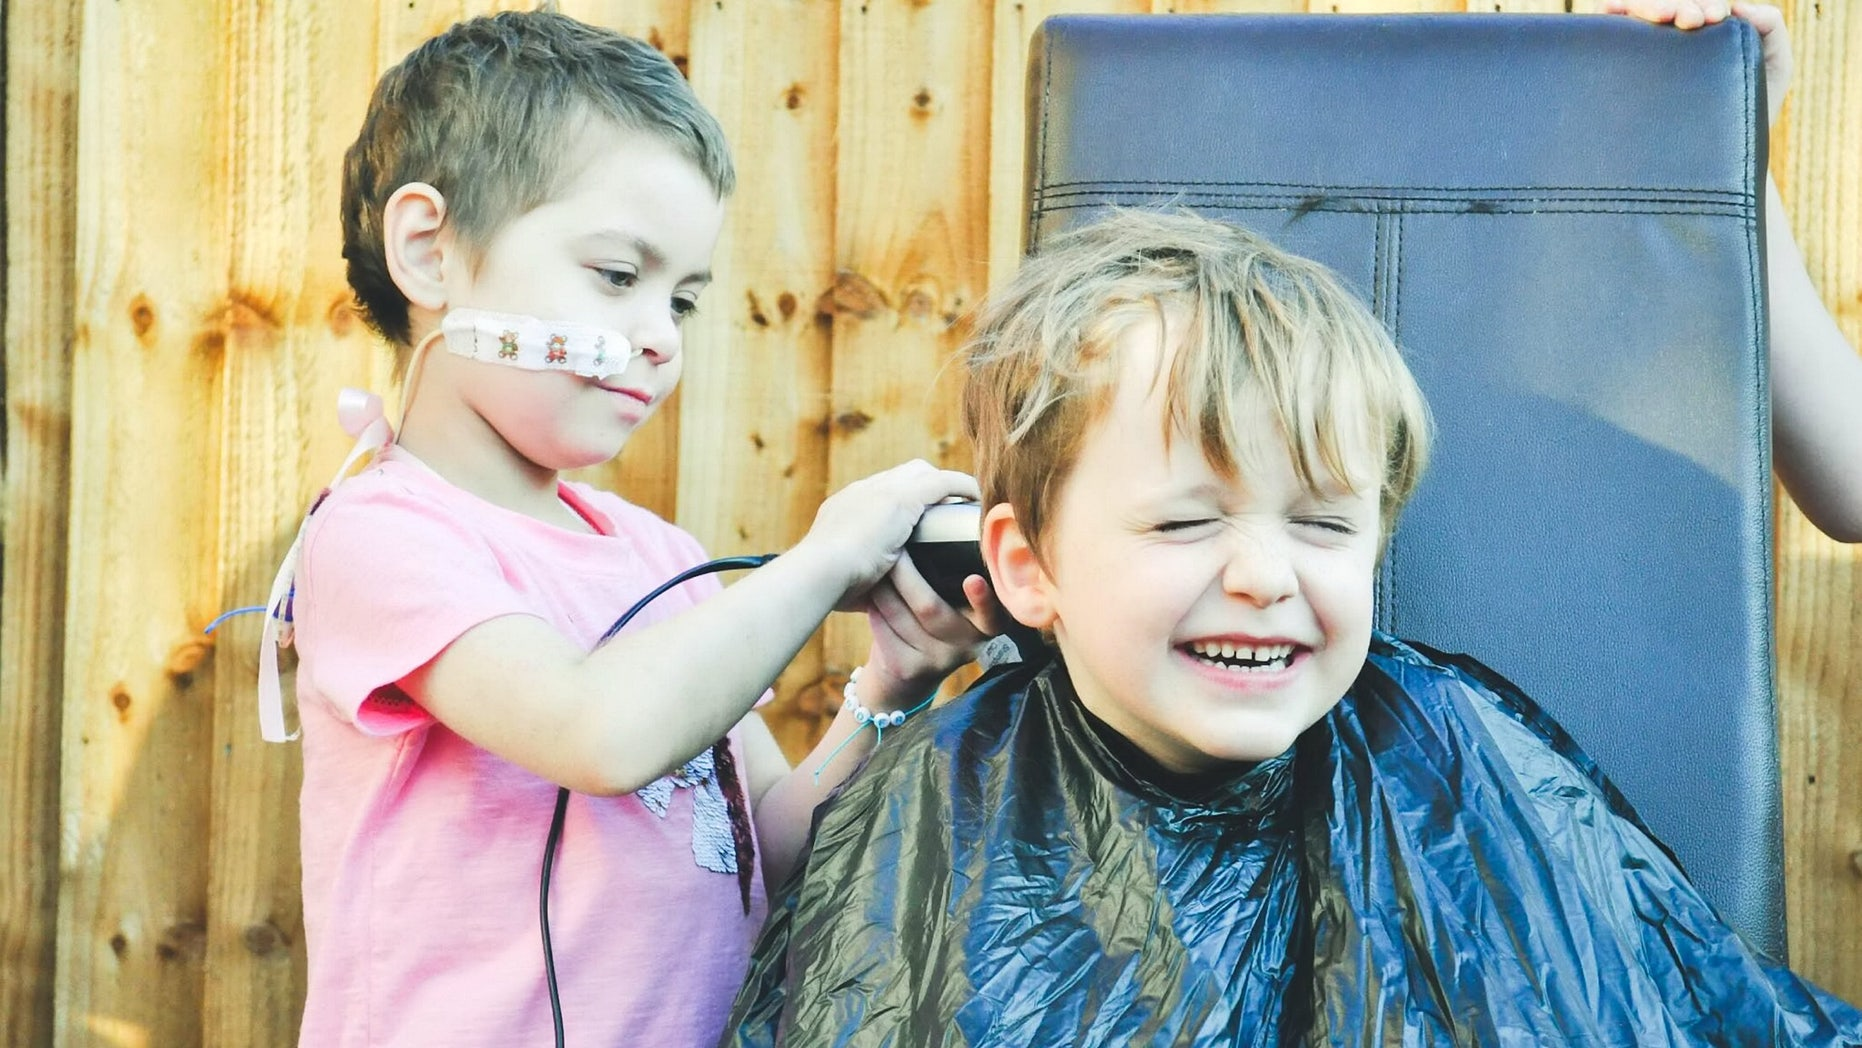 Lulu shaved off her best friend Oisín's hair after he asked how he could help fundraise for her treatment.